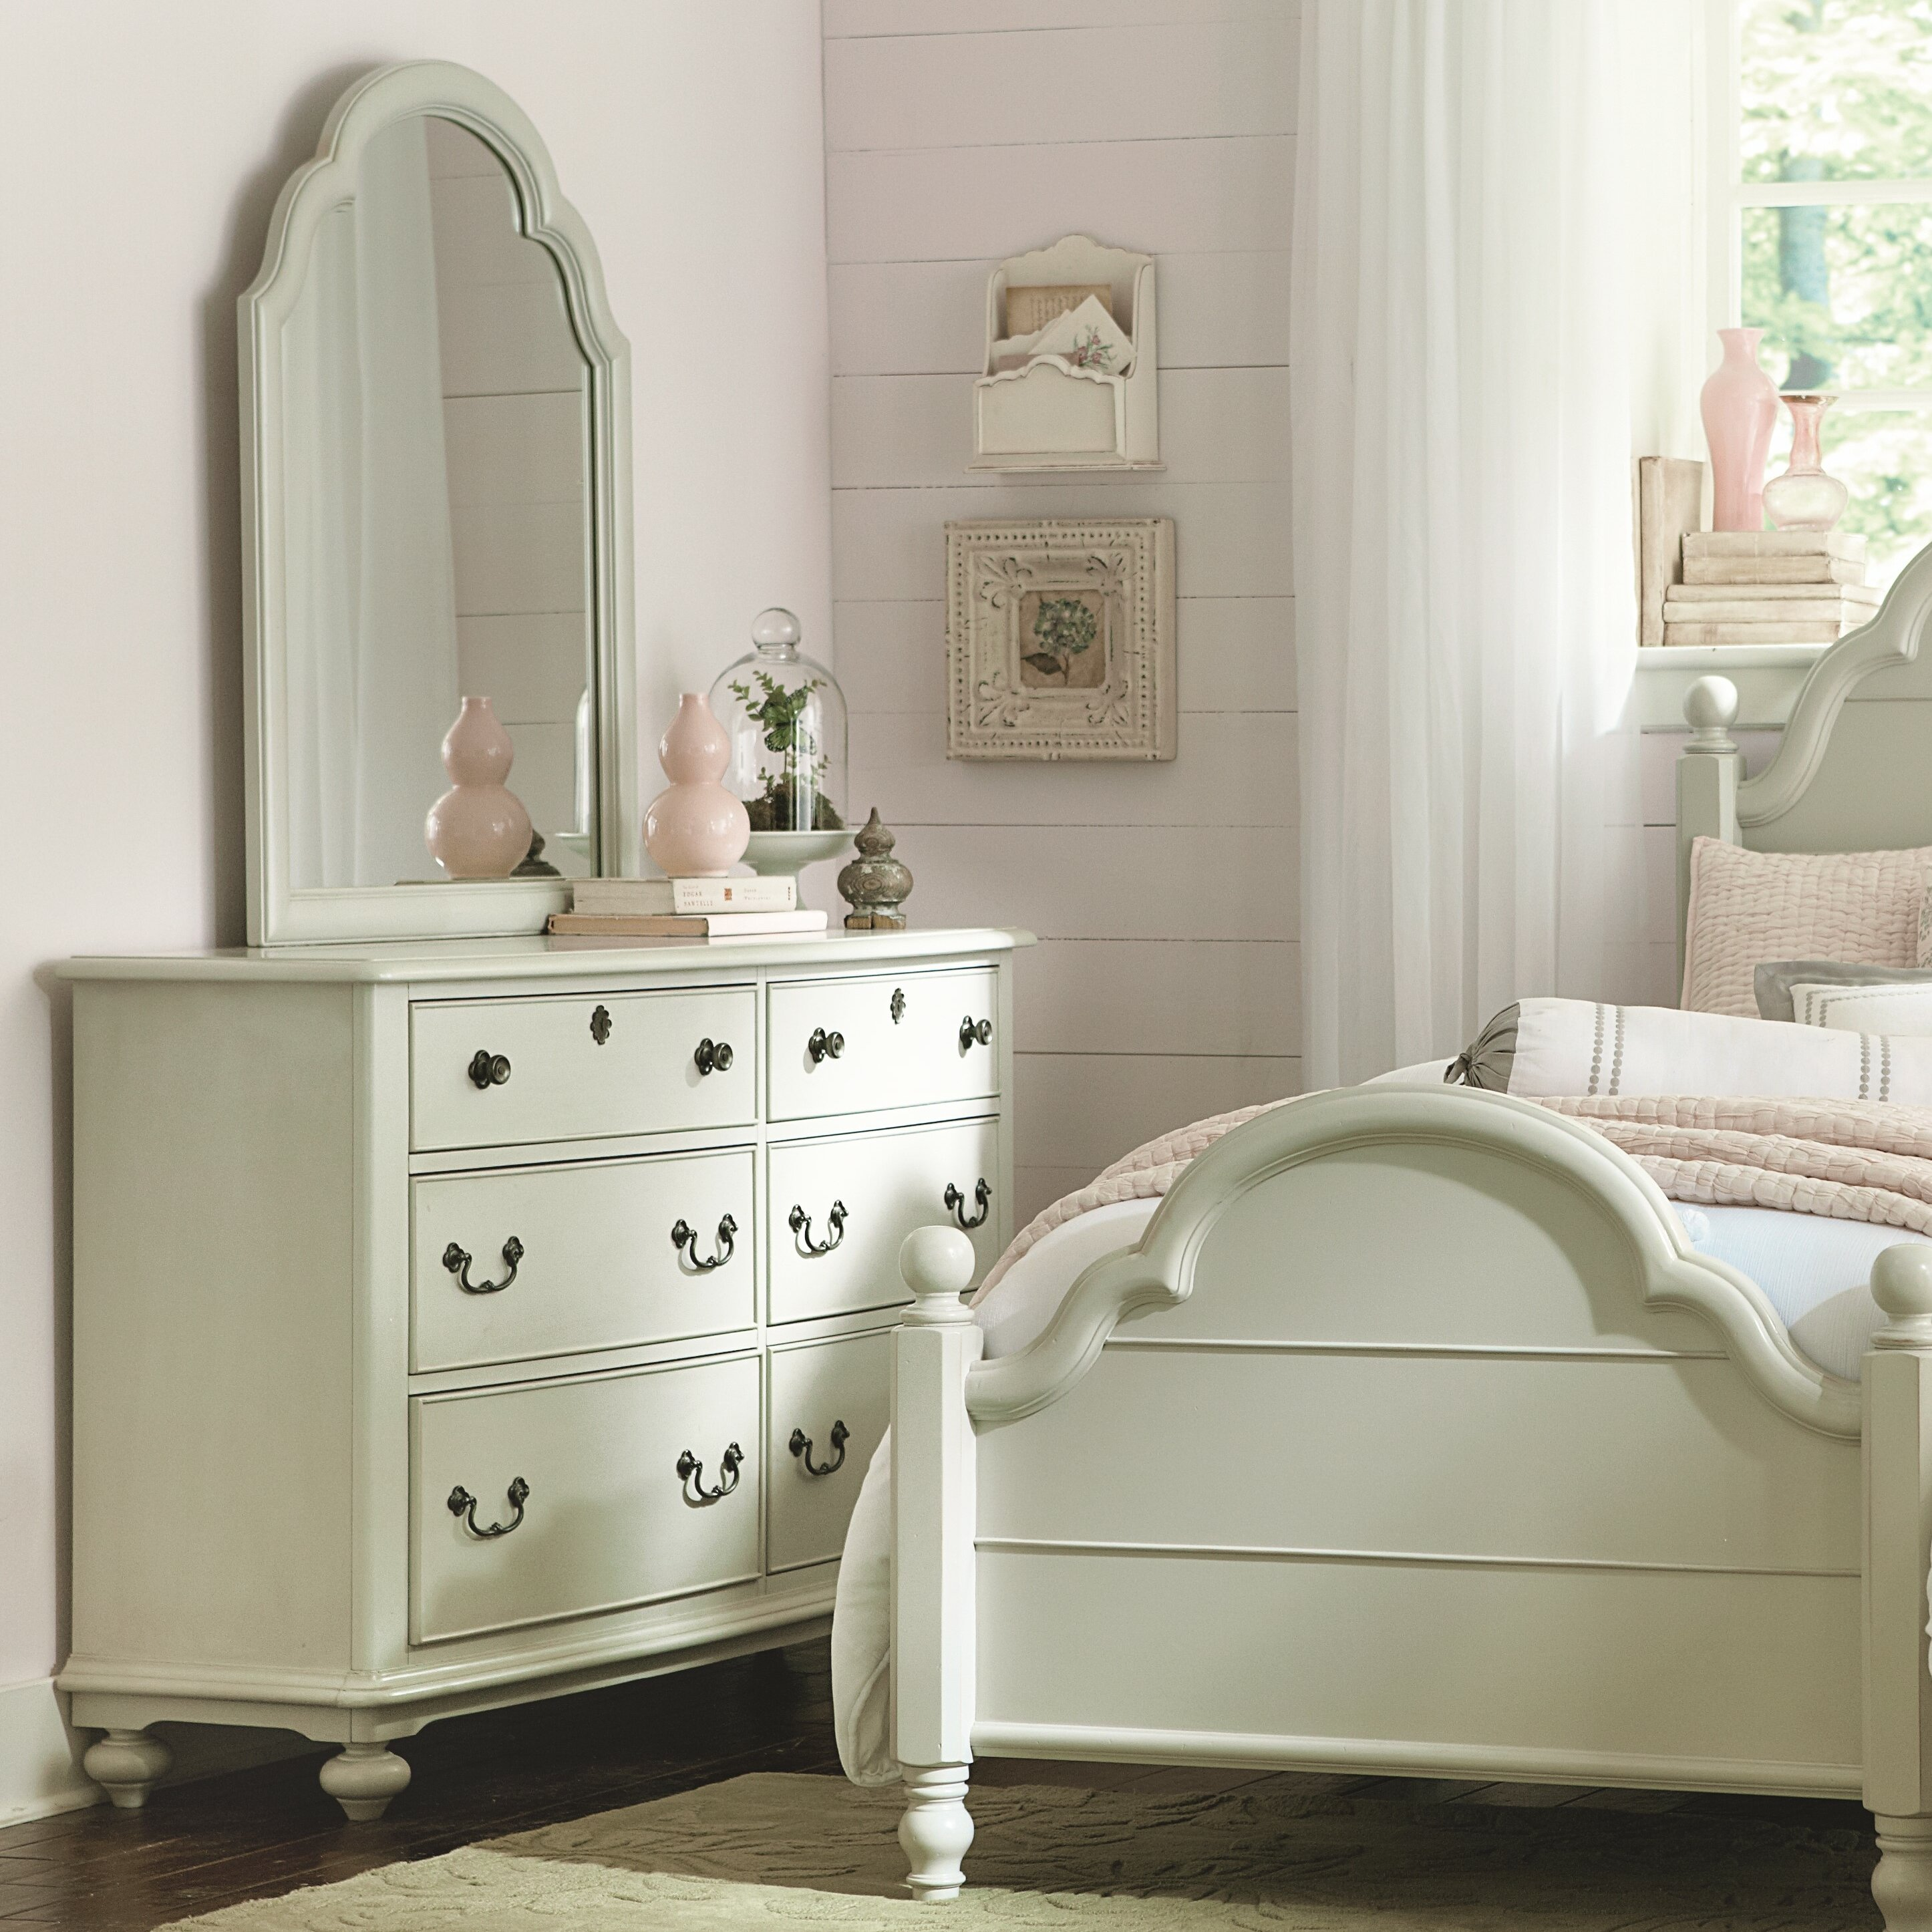 Lc Kids Inspirations By Wendy Bellissimo 6 Drawer Dresser